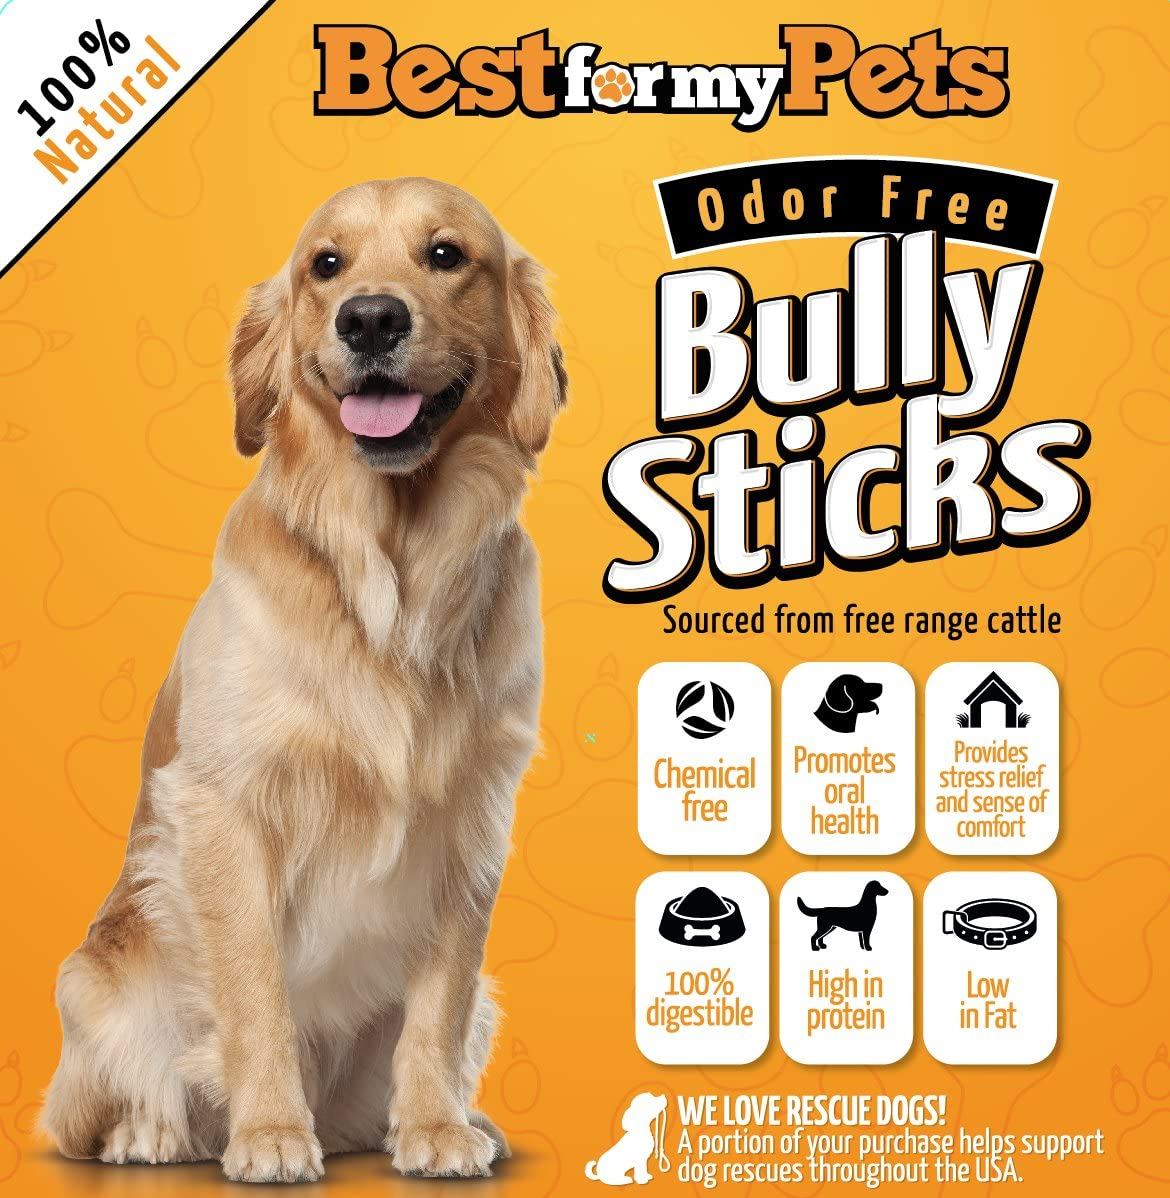 Bully Sticks Odor-Free – 6-Inch All-Natural Dog Treats Premium Beef Dog Chews, 8-Ounce Bag